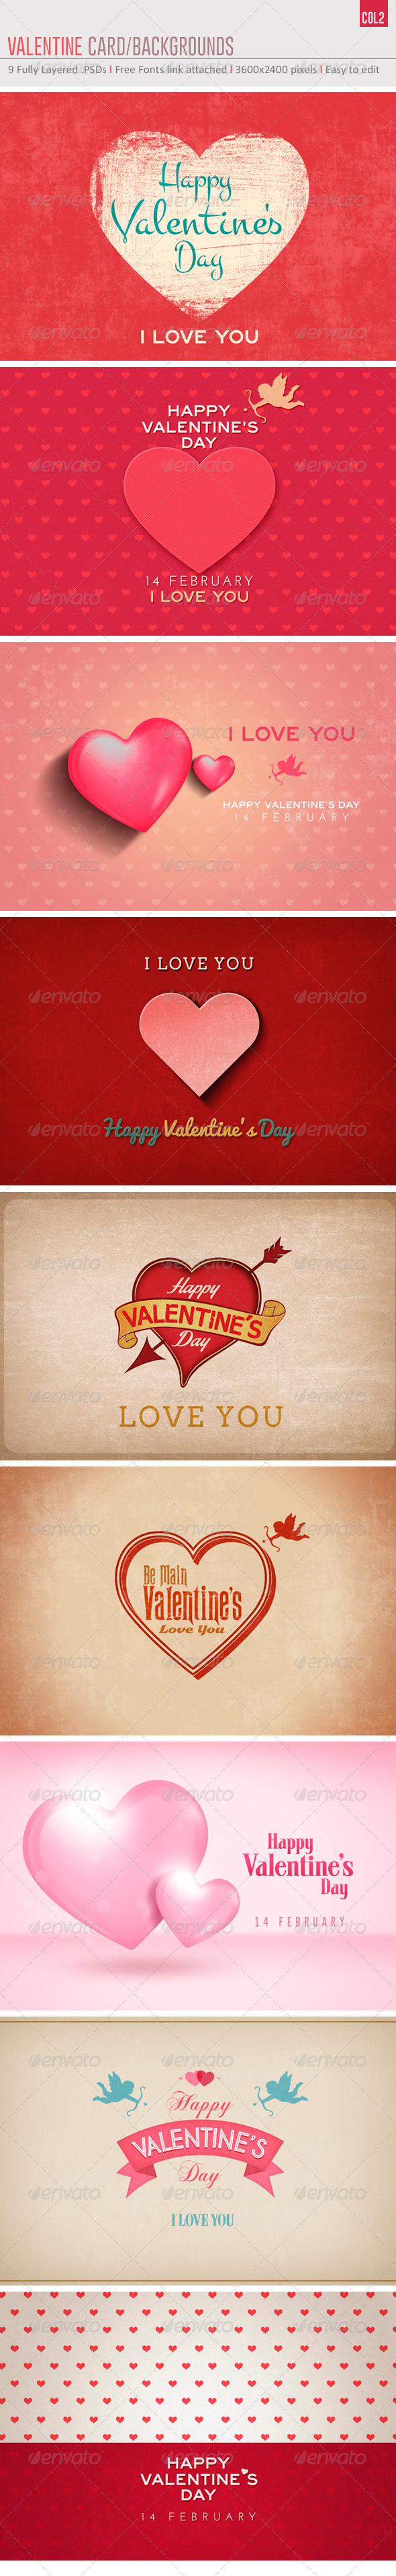 Valentine's Card/Backgrounds Col2 - Backgrounds Graphics